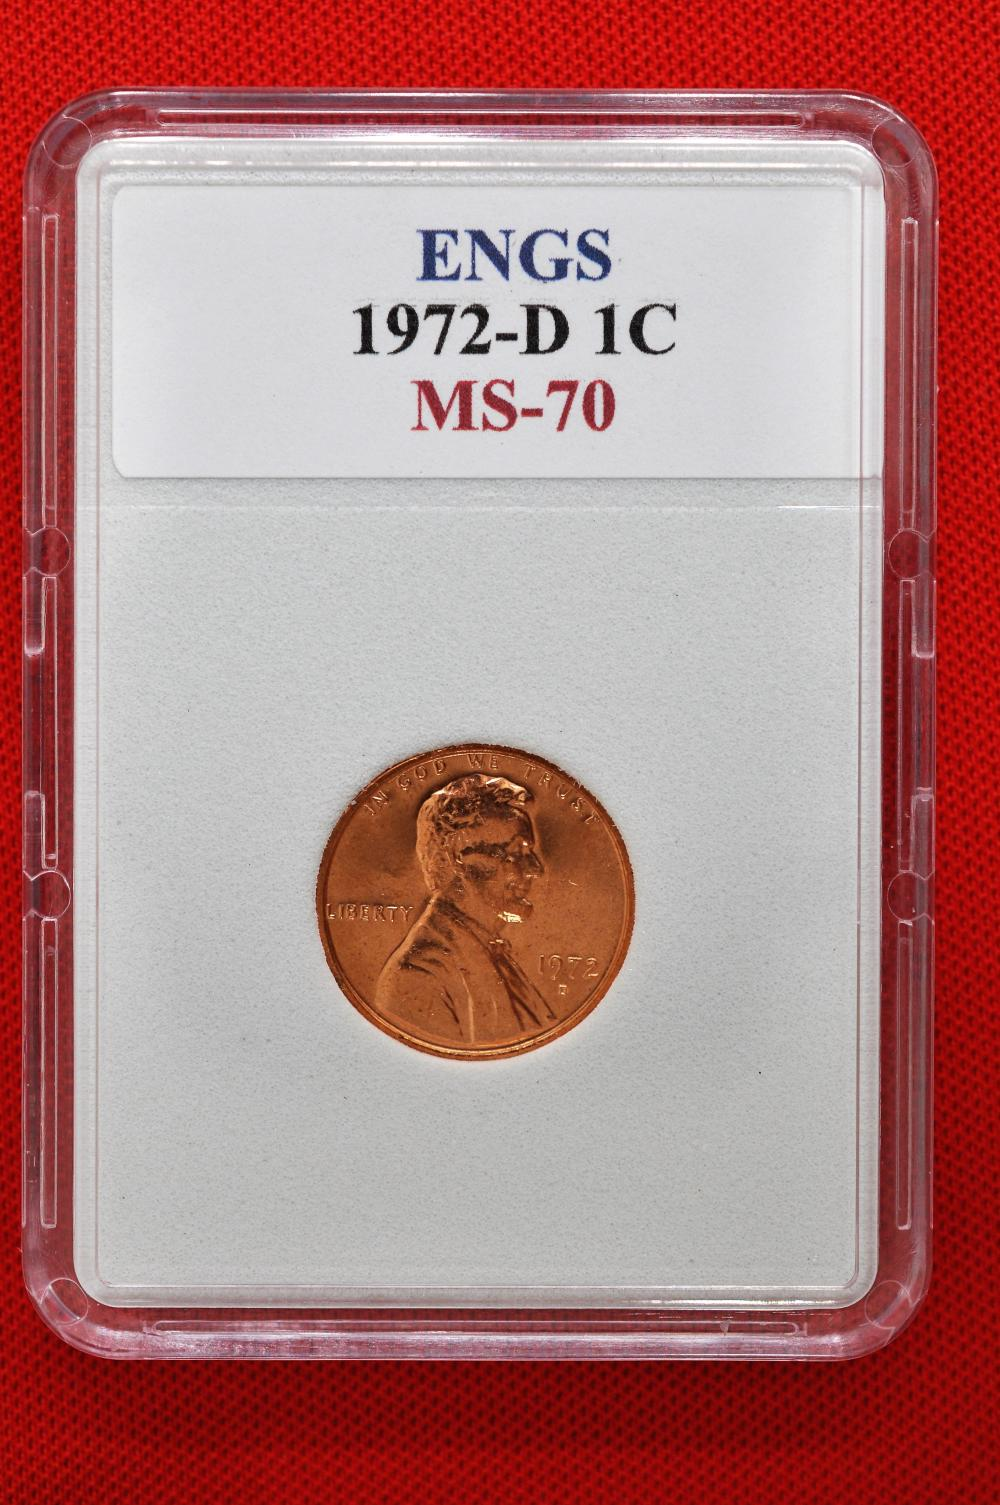 ENGS 1972-D MS-70 Lincoln Memorial Penny/Cent